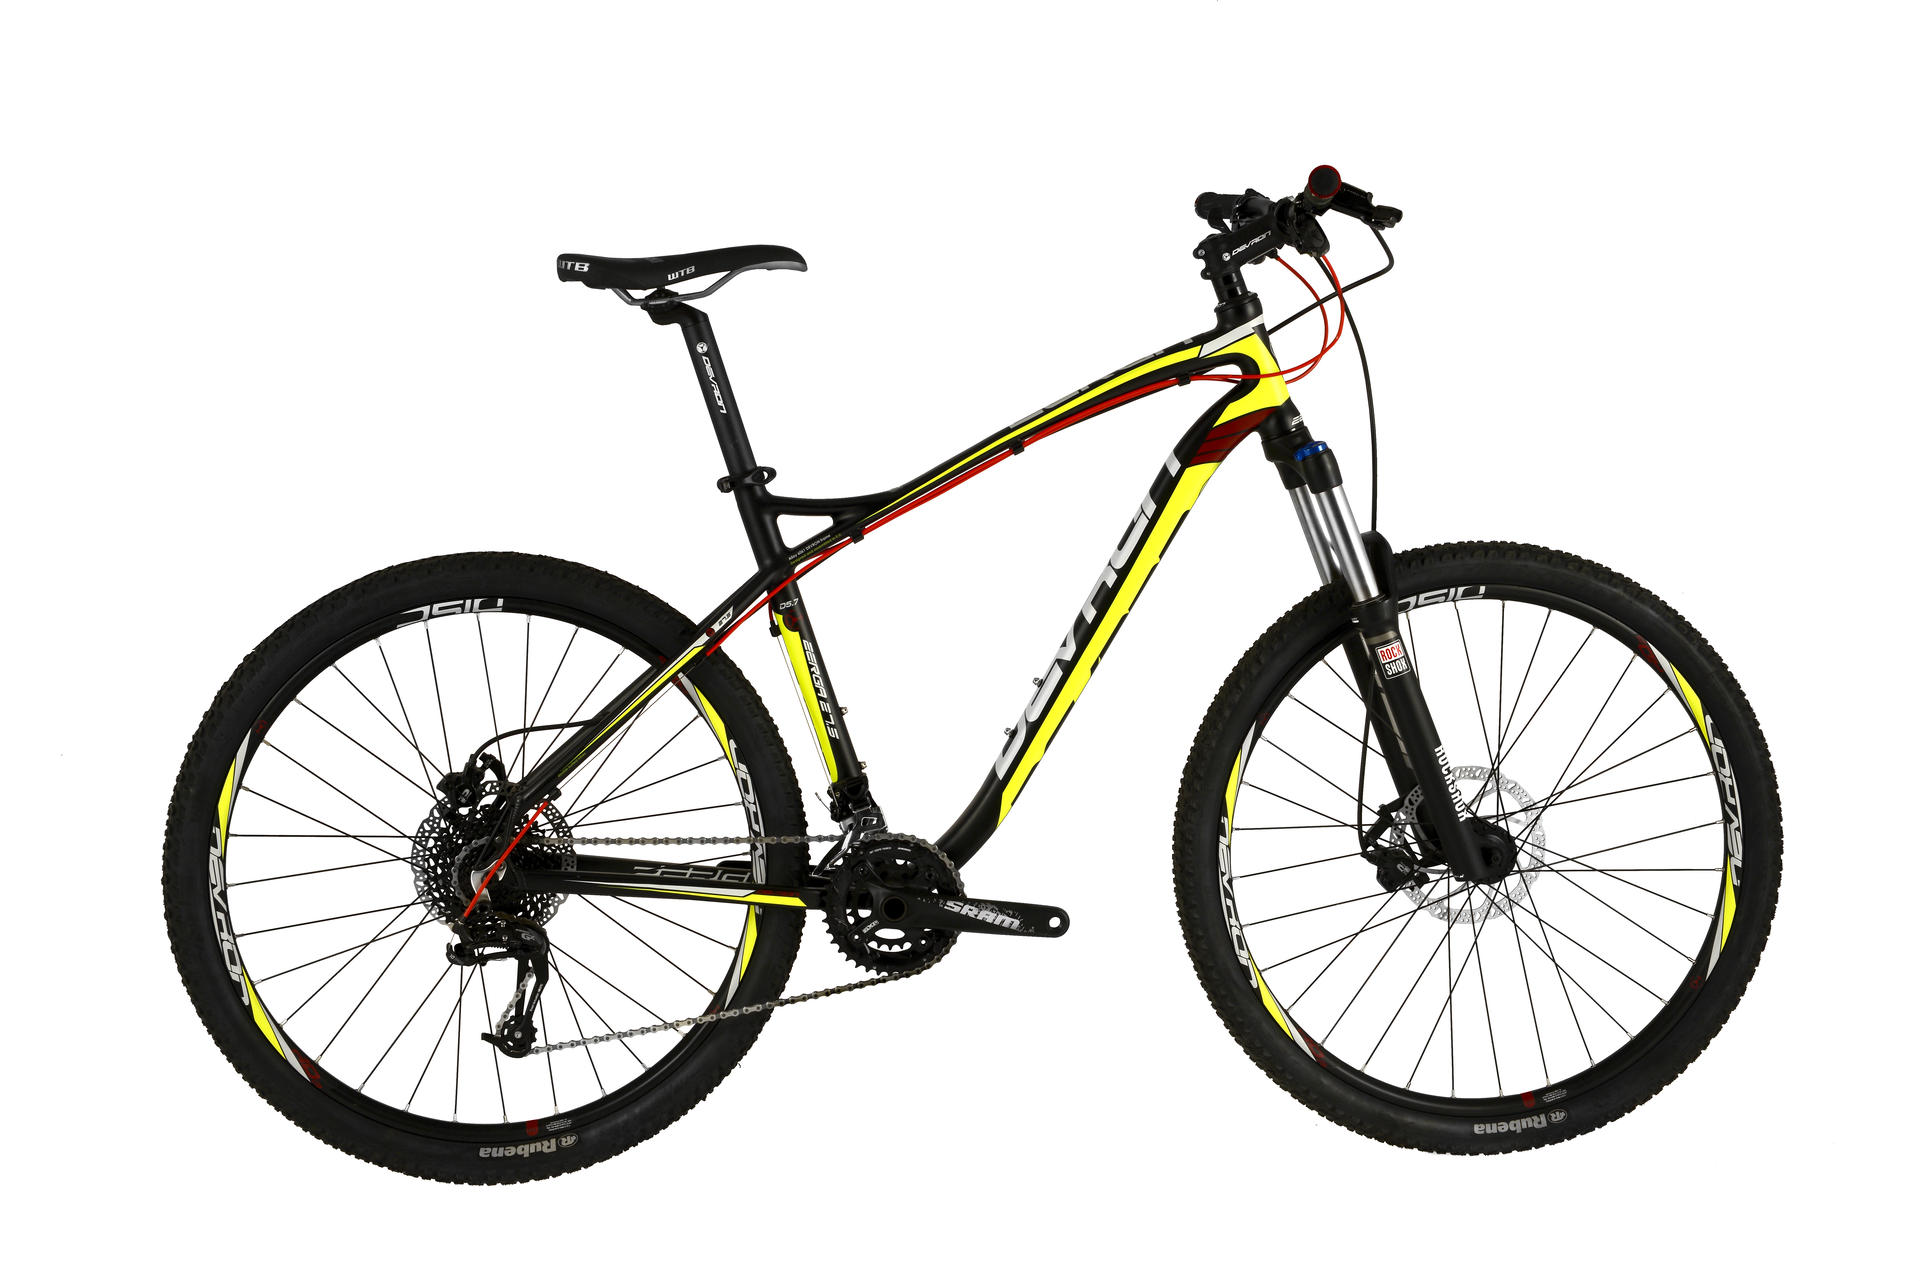 Mountain bike uomo Devron Zerga D5,7 Black Fury 495 mm